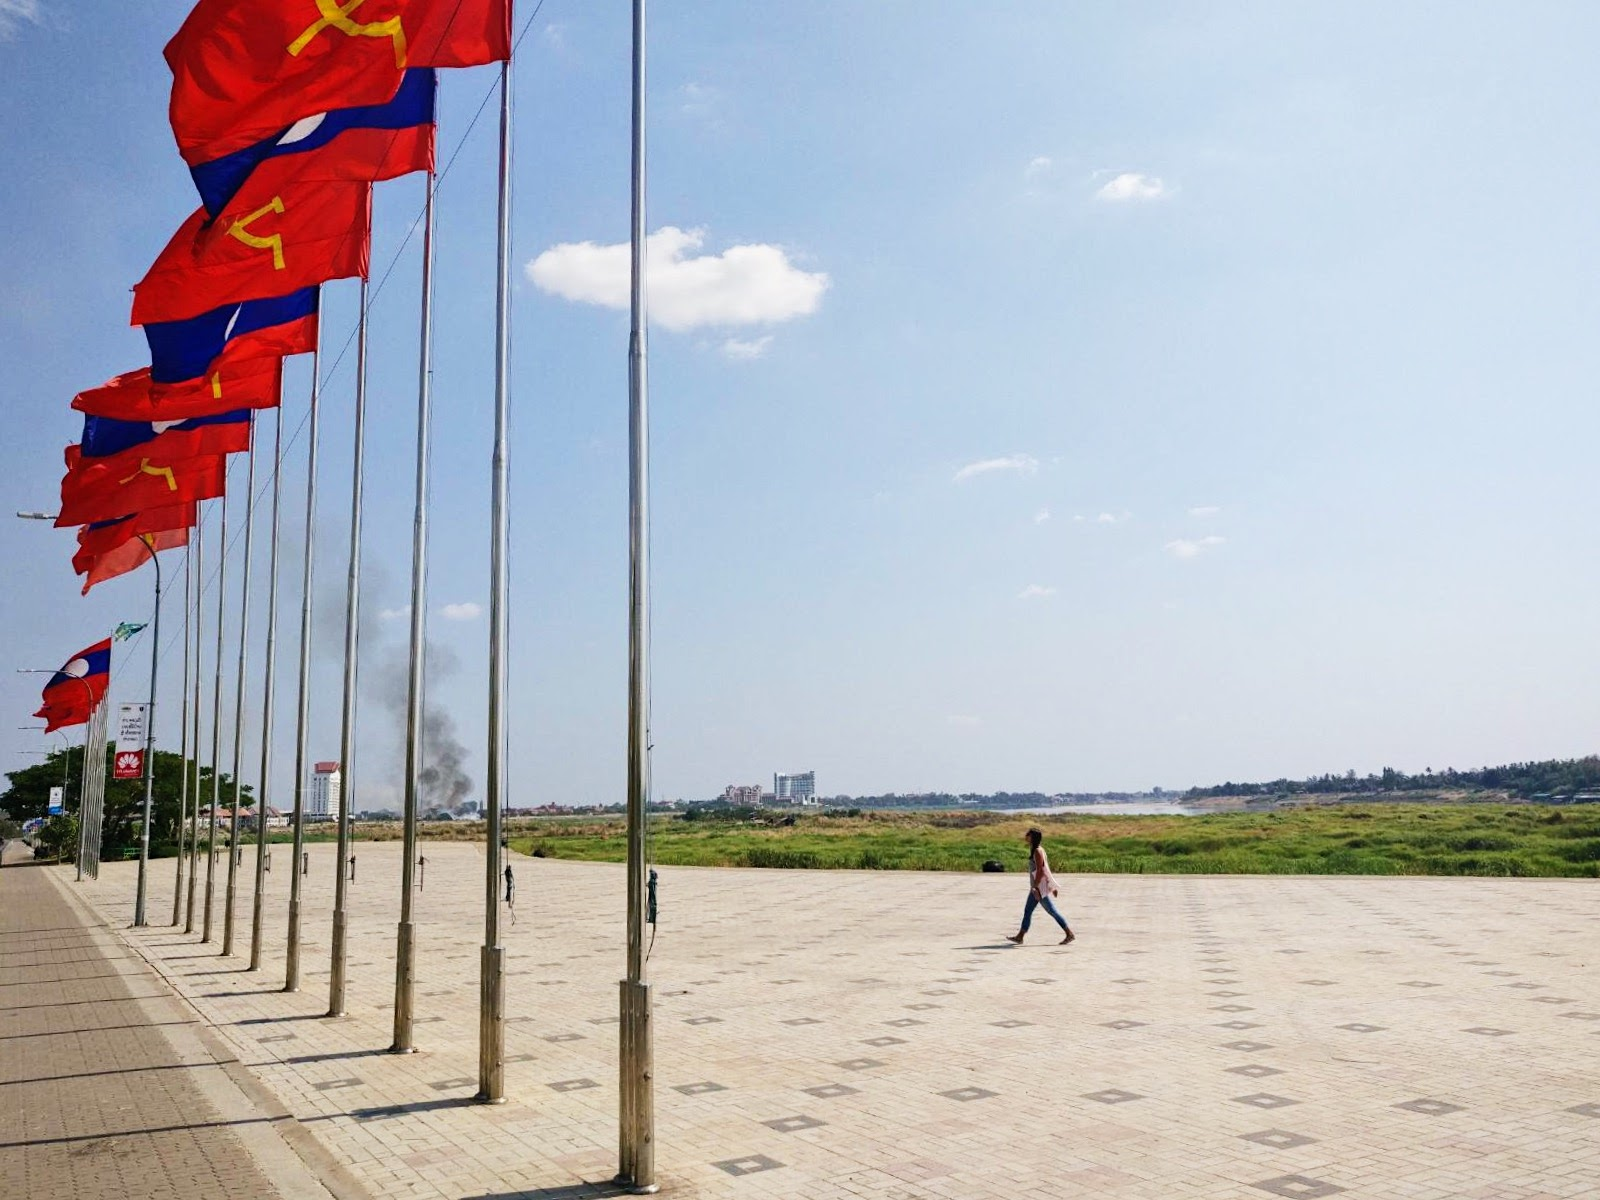 Image: Visiting Vientiane - What to do: Flags